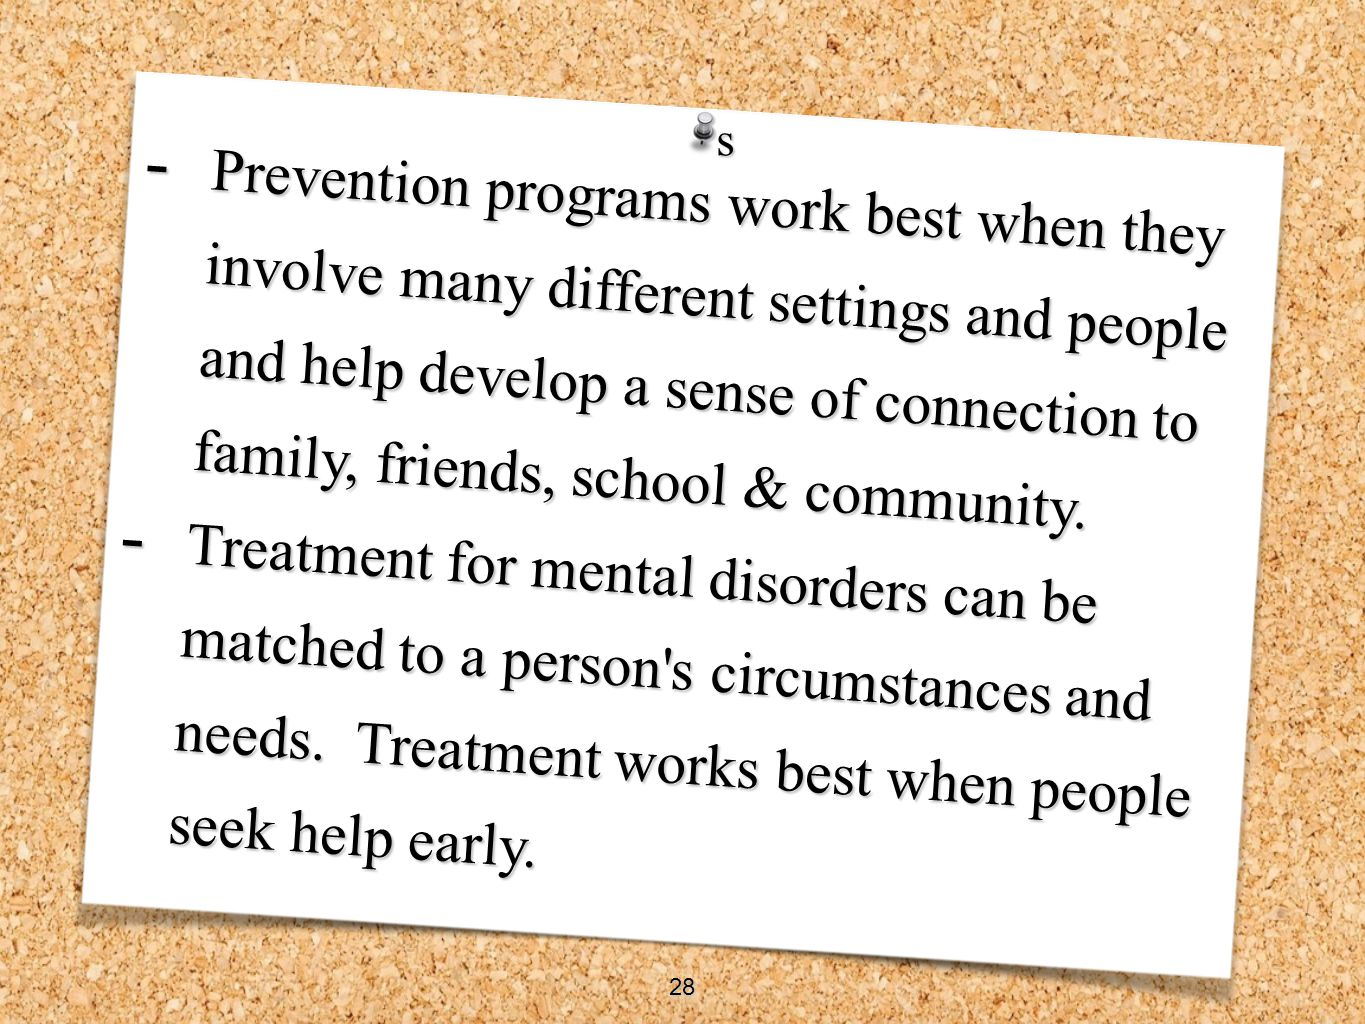 - Prevention programs work best when they involve many different settings and people and help develop a sense of connection to family, friends, school